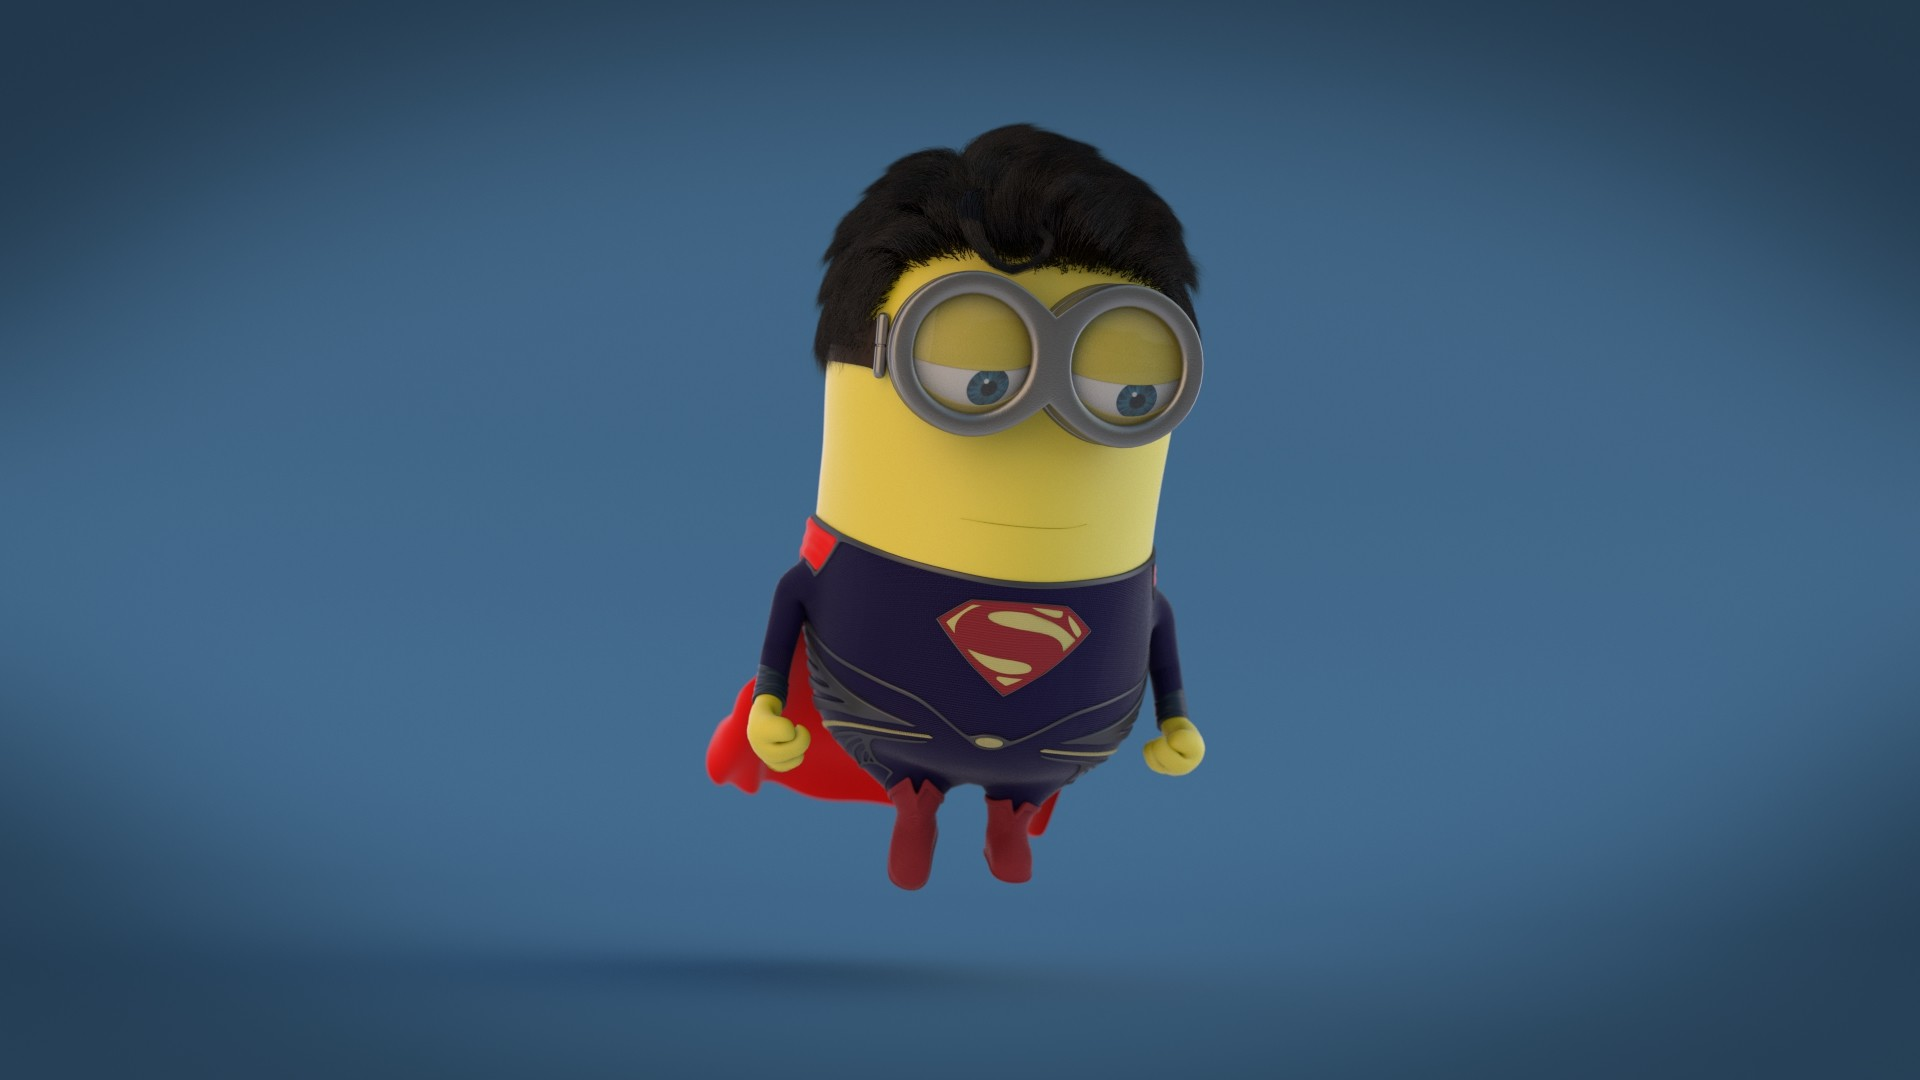 1920x1080 ... Minion--Laptop-Wallpaper